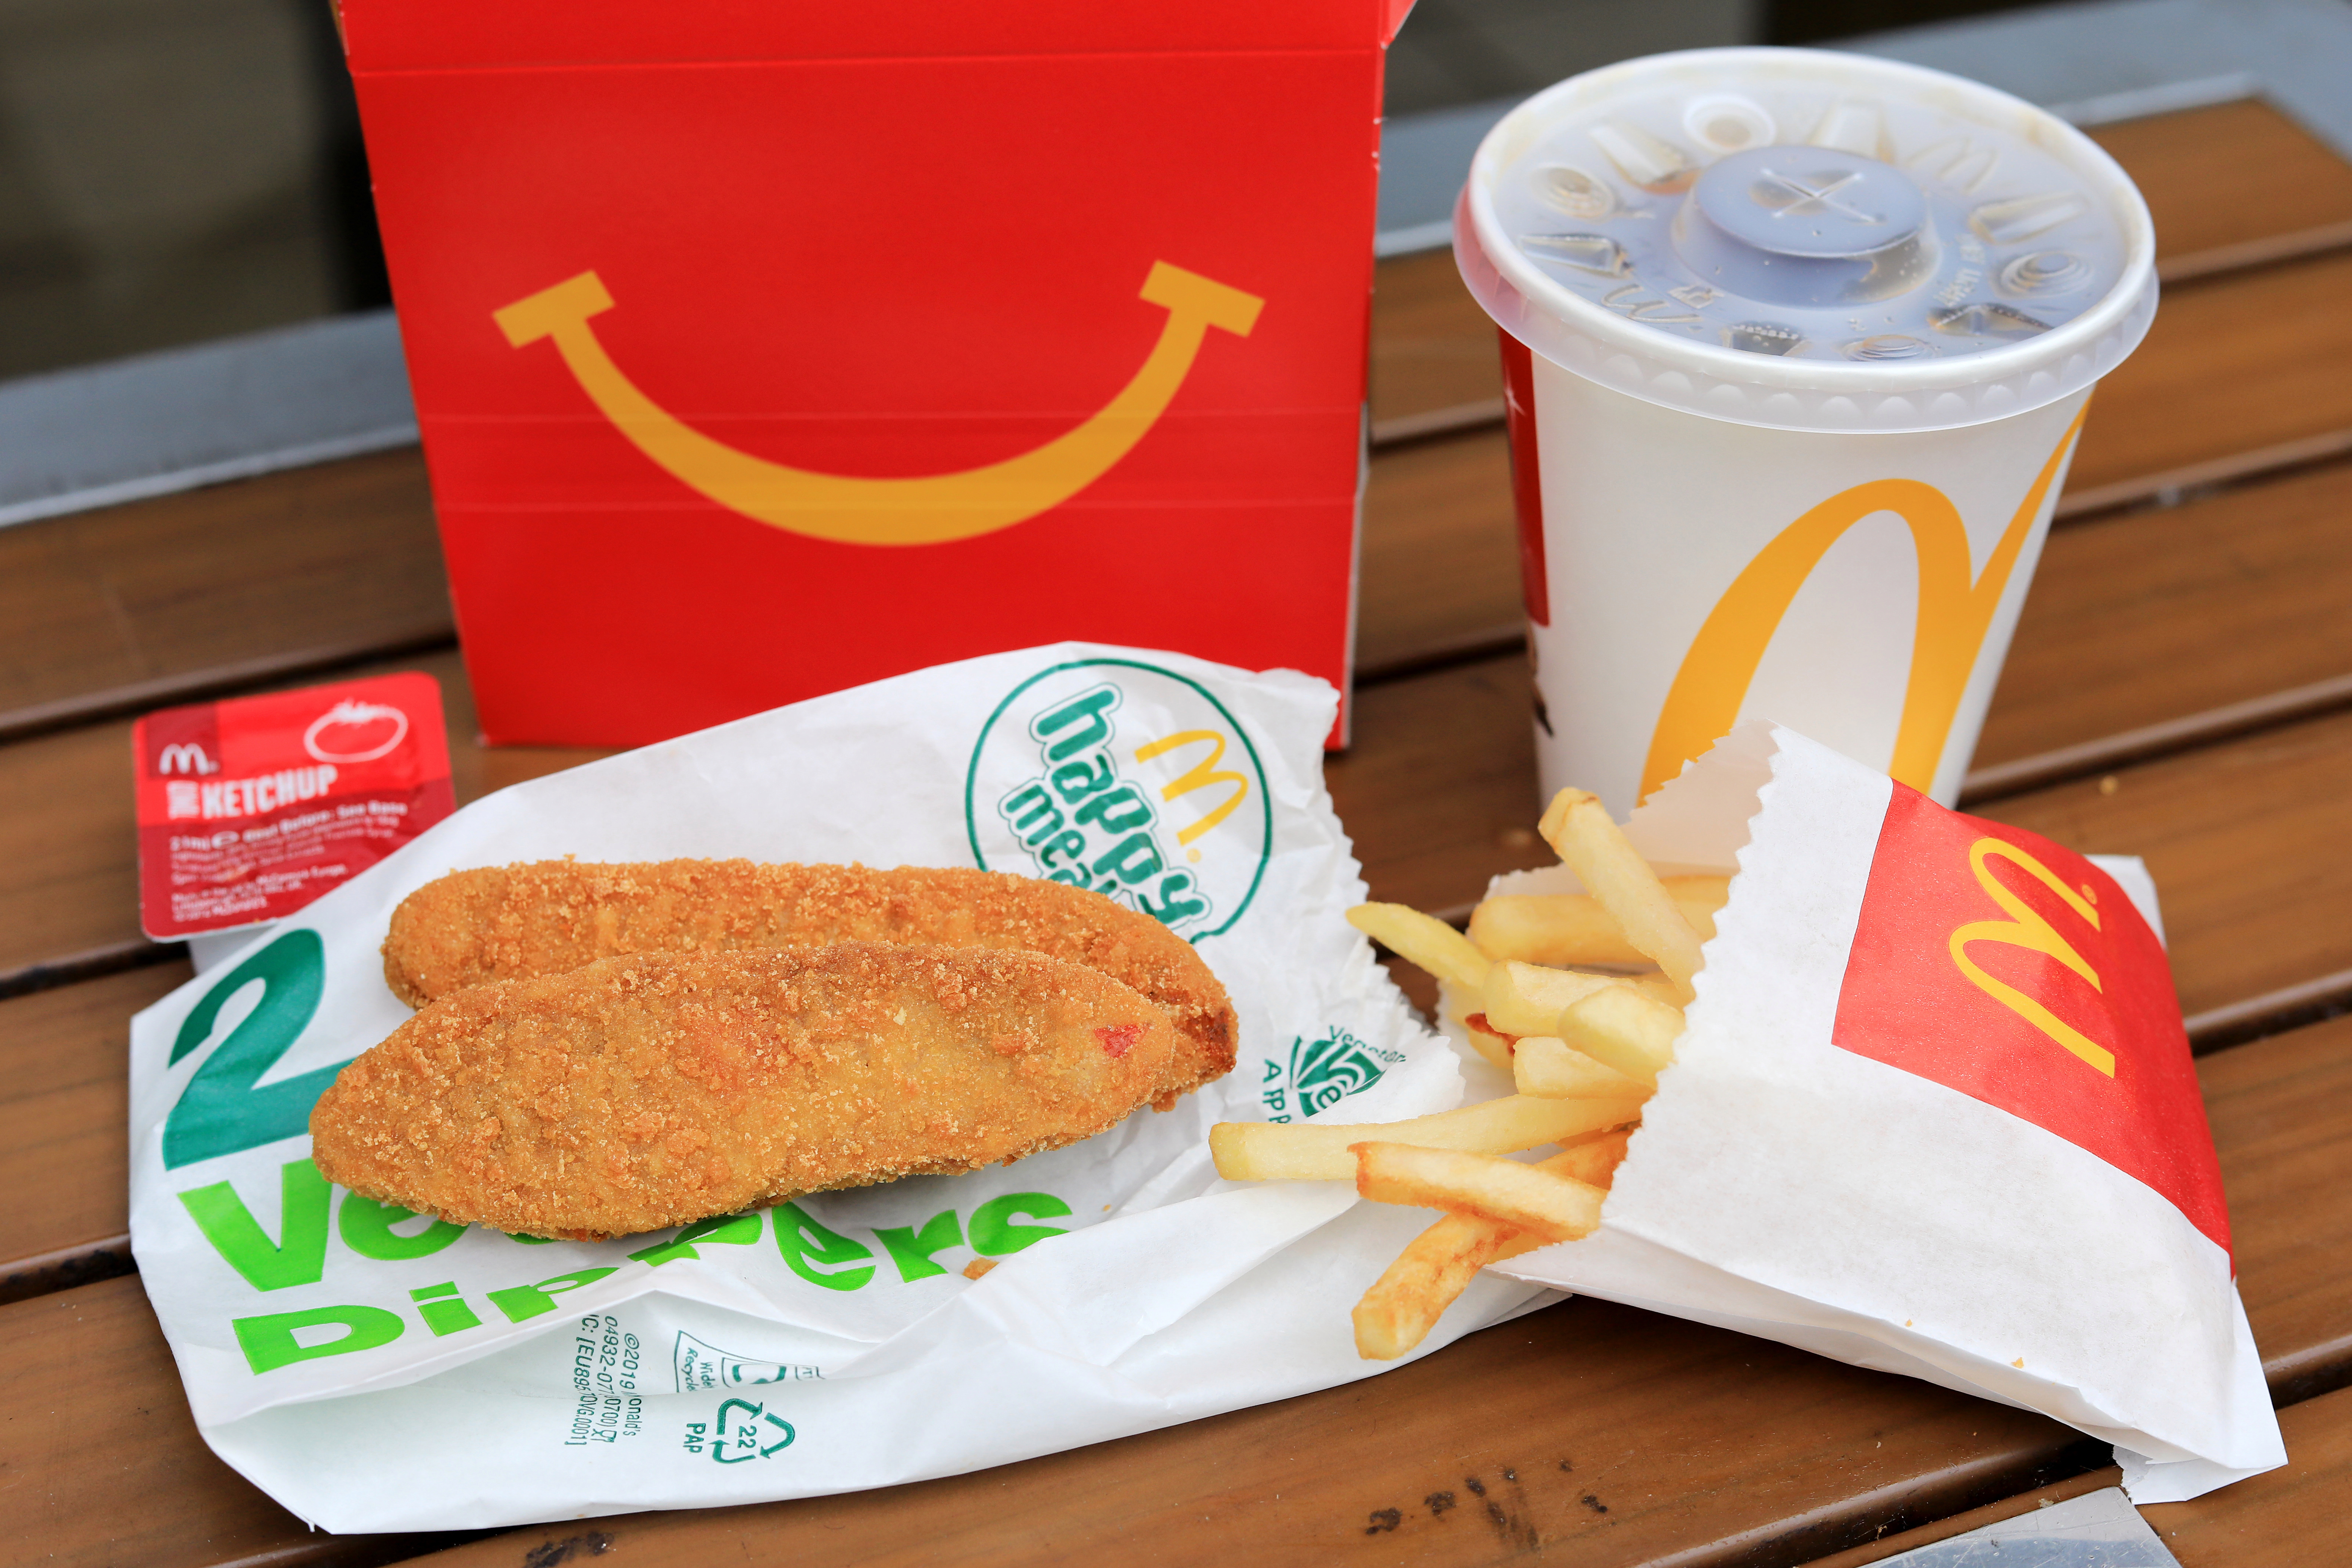 McDonald's has added two vegetarian options to its limited lockdown menu after a backlash — including the Veggie Dippers